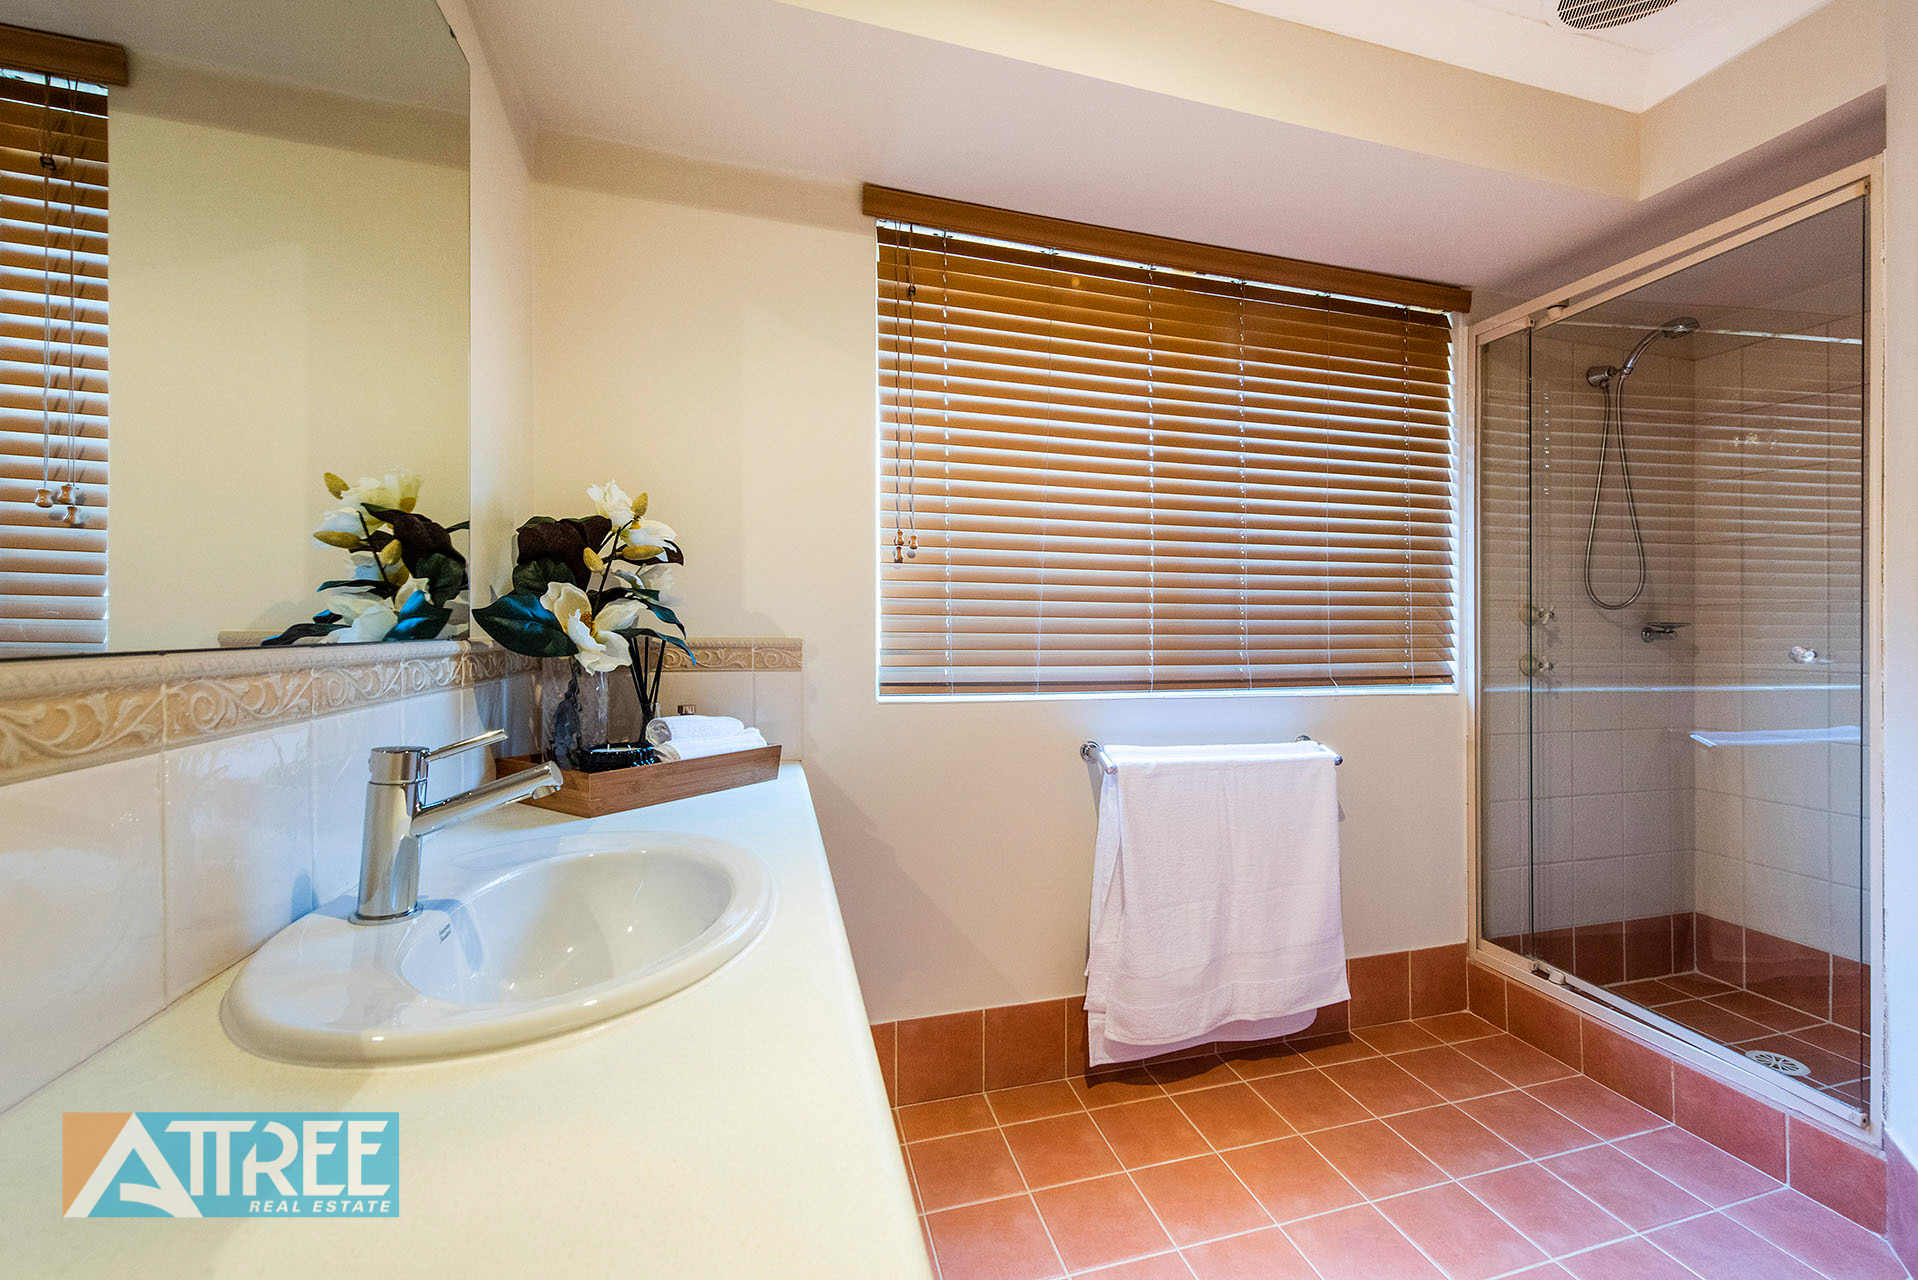 Property for sale in CANNING VALE, 3 Hokin Way : Attree Real Estate